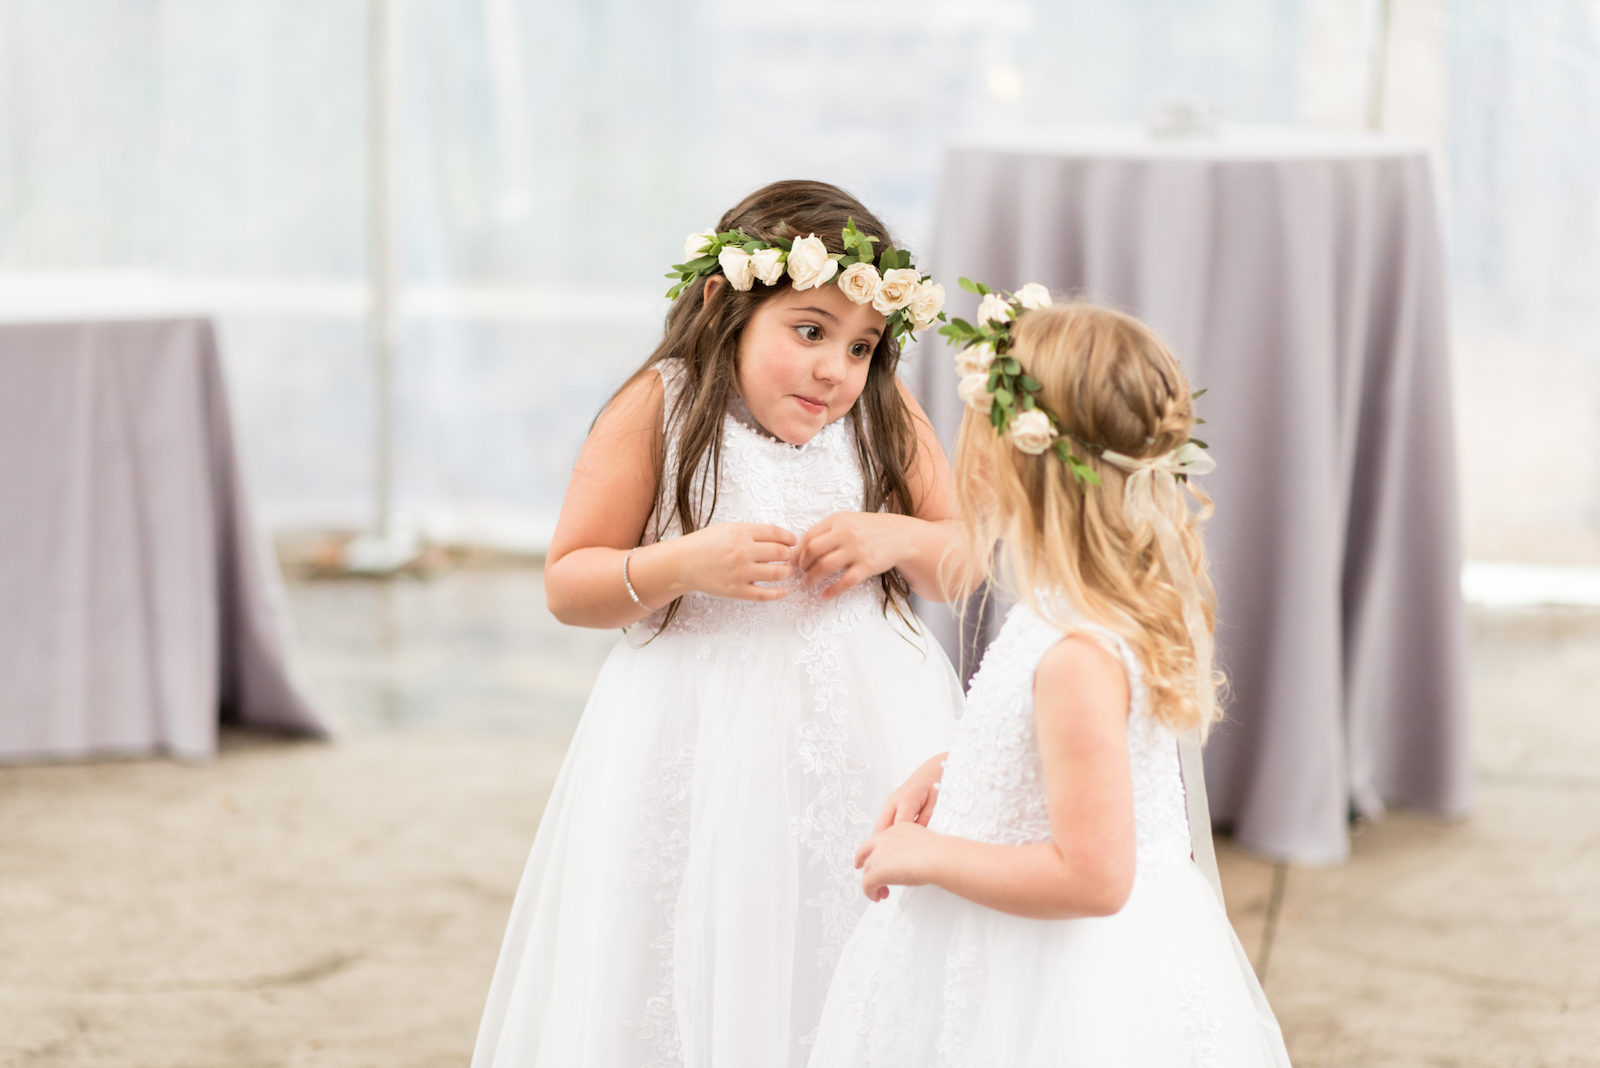 Flower Ideas for Your Flower Girls from Melissa Marie Floral Design featured on Nashville Bride Guide